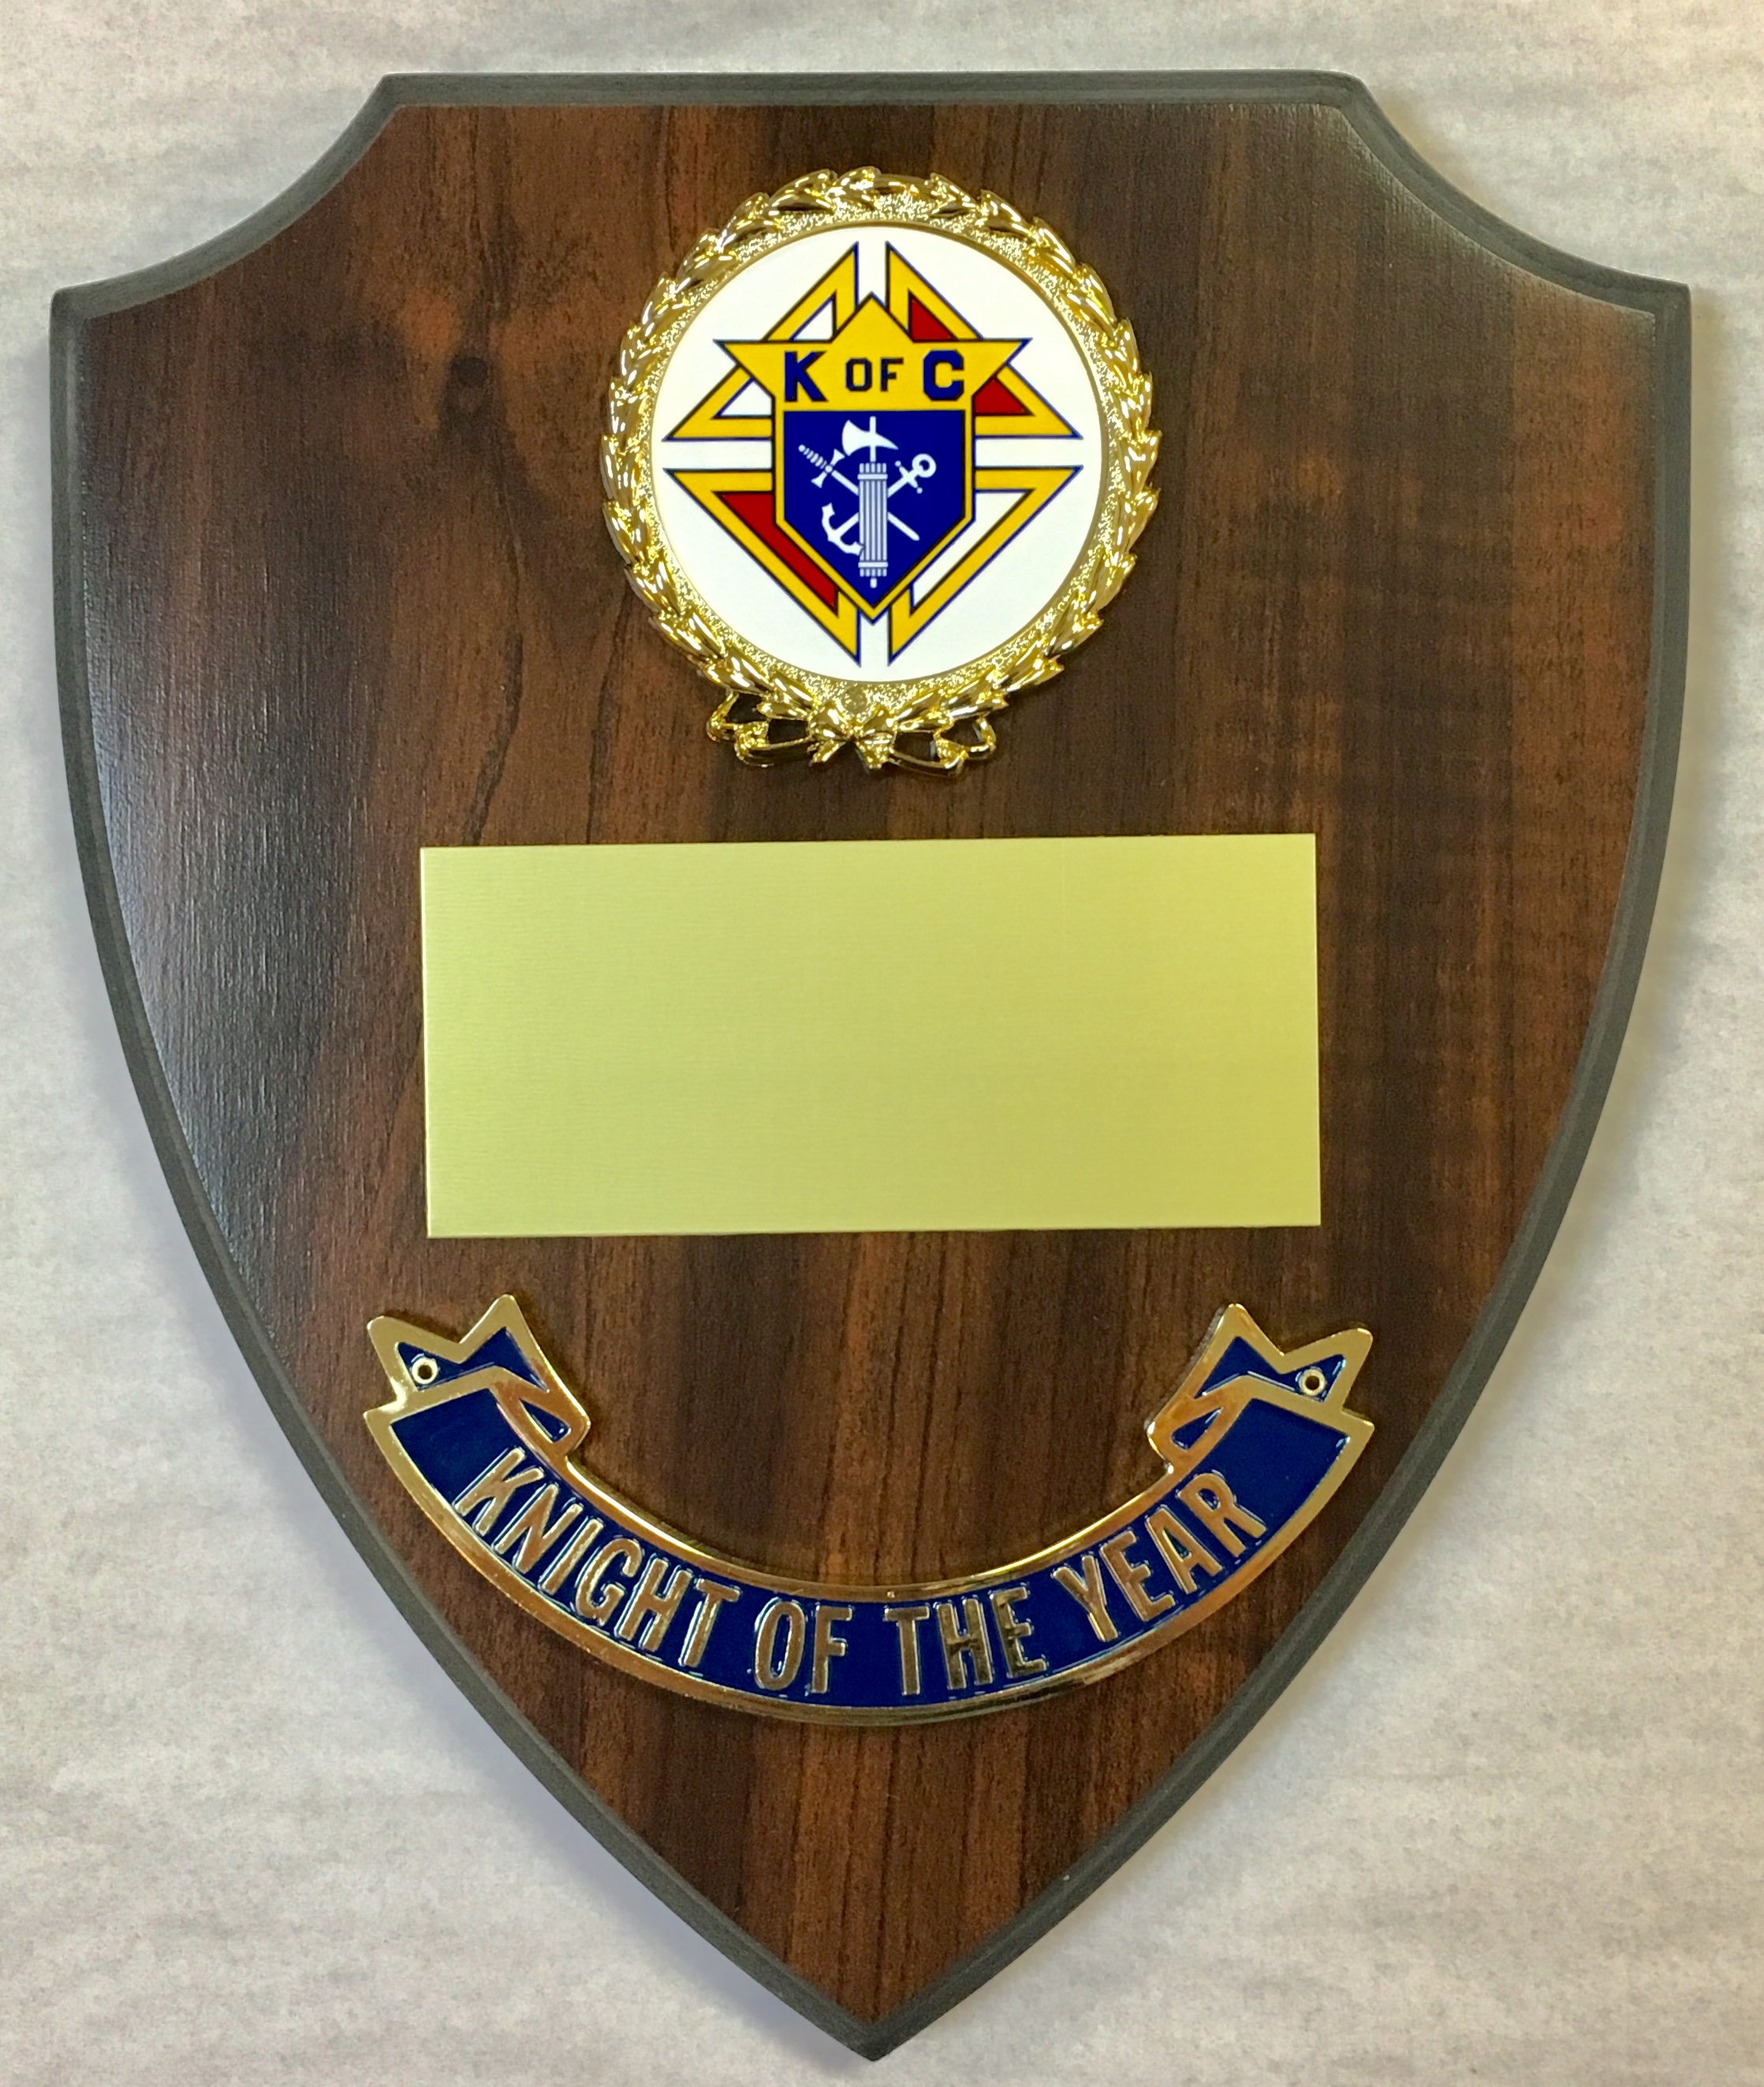 No. P-I - Knight of the Year Shield Plaque